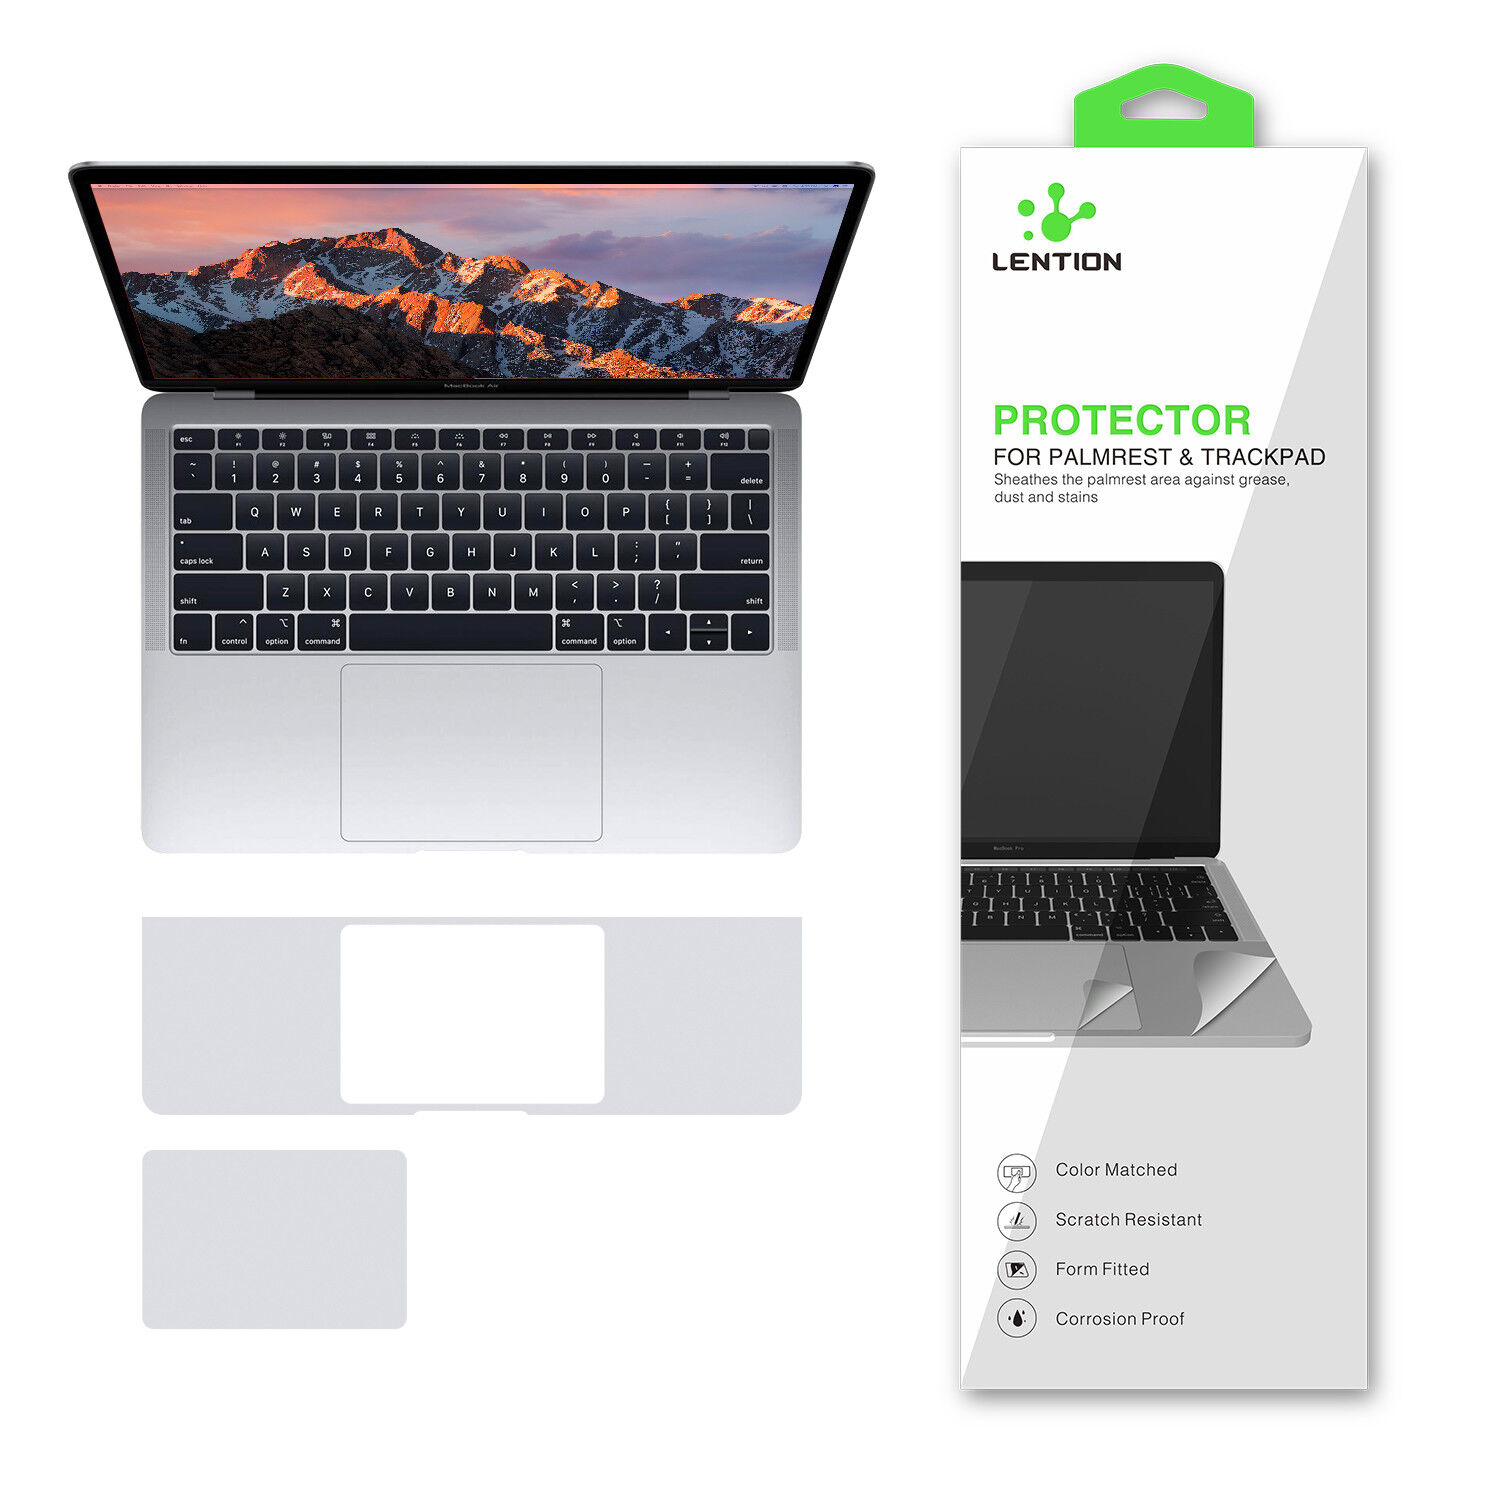 LENTION Palm Rest Trackpad GuardCover Skin for 2018-2019 M